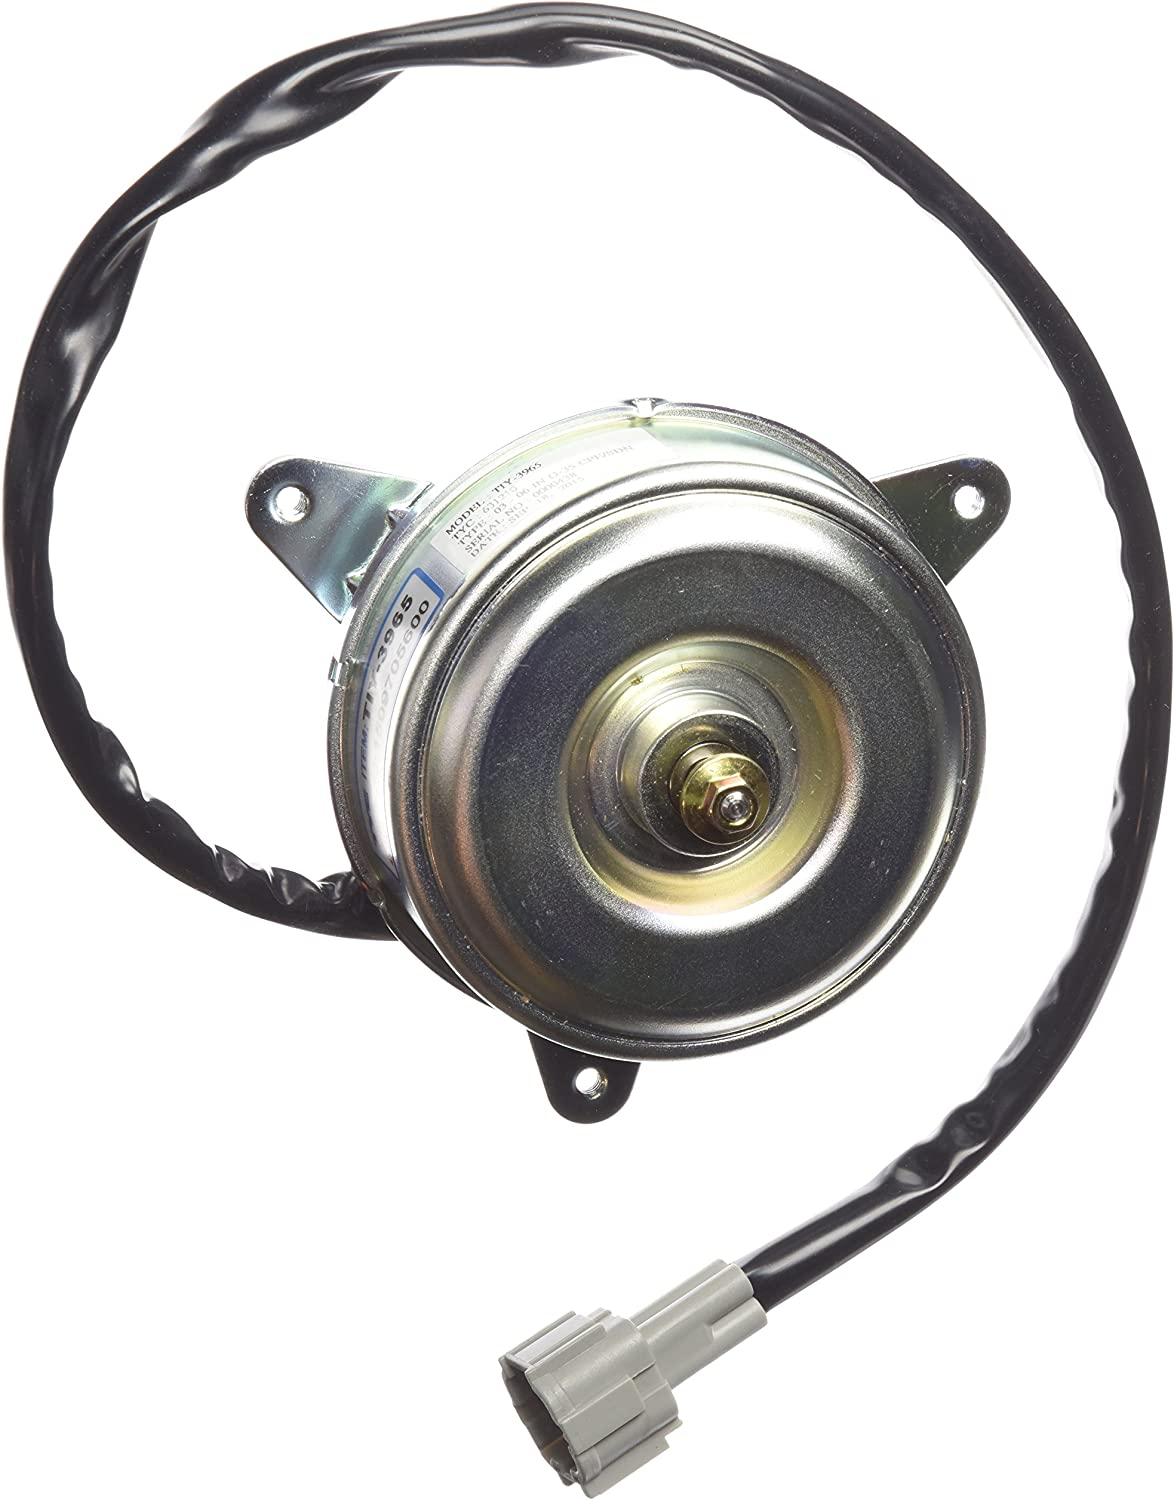 TYC 631210 G-35 Replacement Radiator/Condenser Cooling Fan Motor